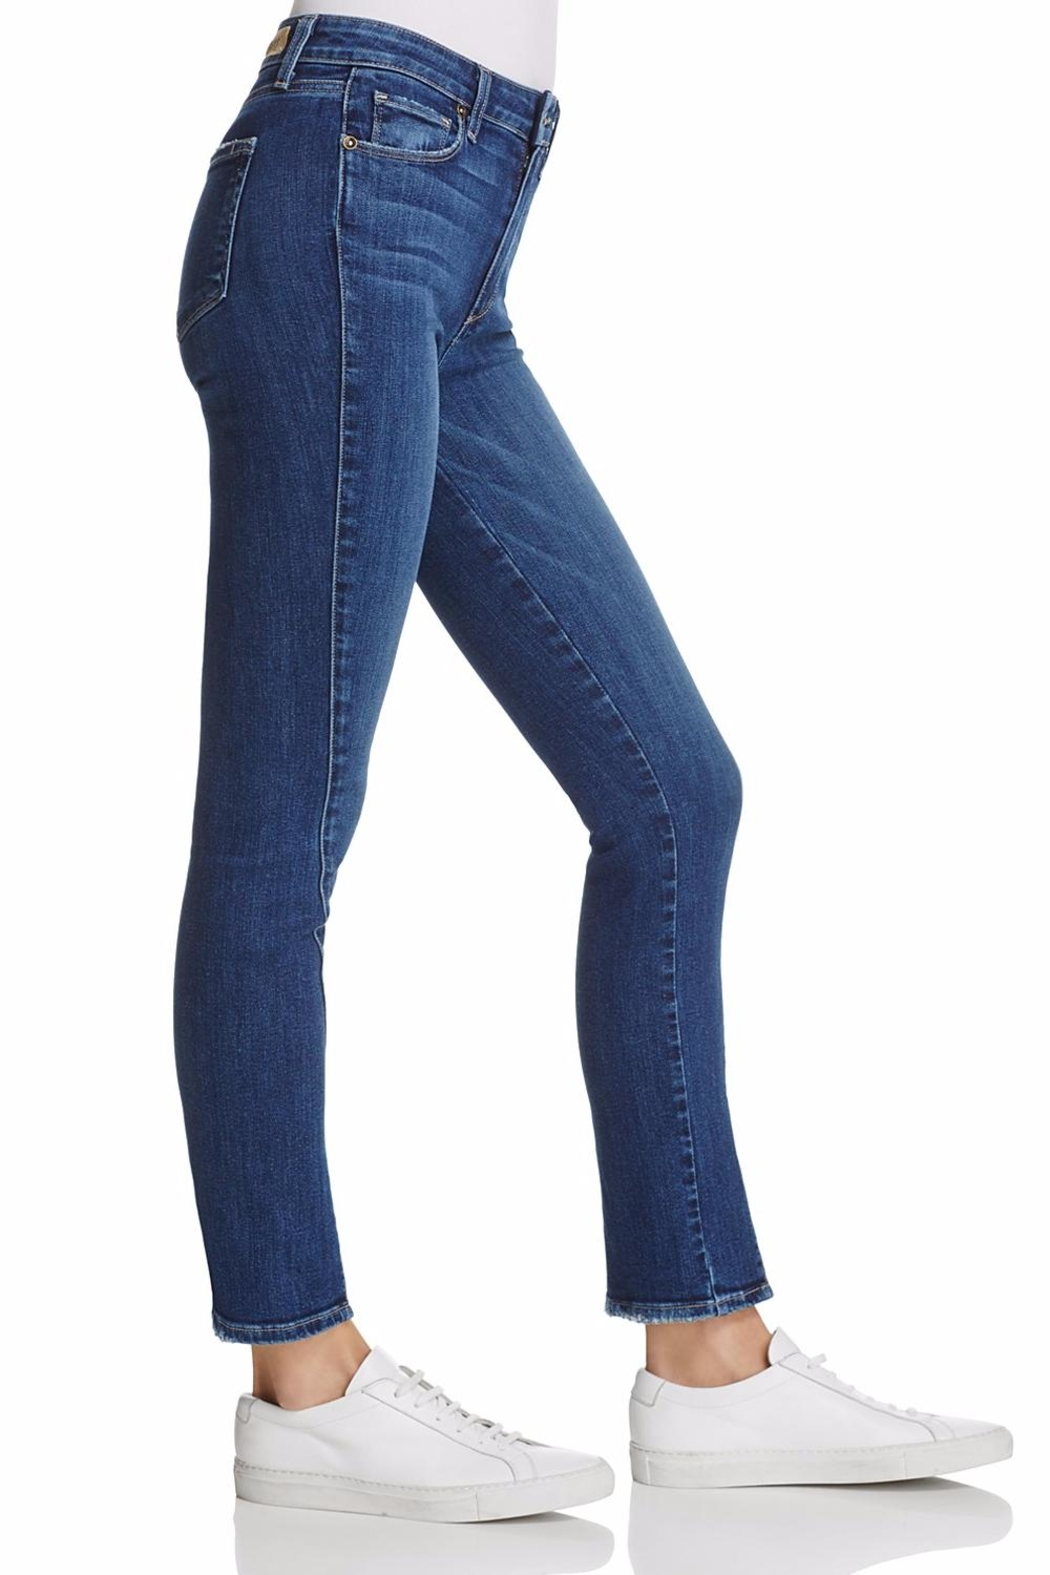 Paige Julia Twisted Seams Jeans - Side Cropped Image